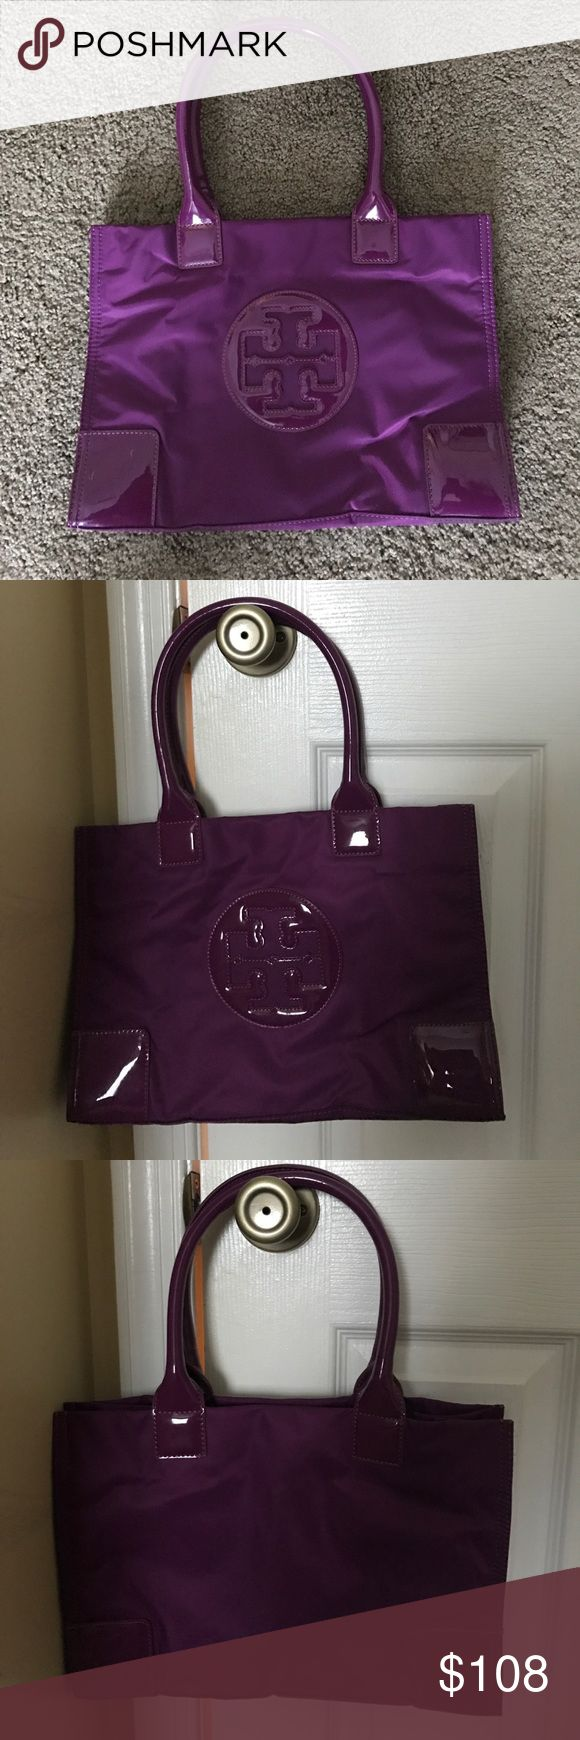 """Tory Burch mini Ella tote purple Tory Burch purple mini Ella tote.  This bag was only used once.  It is in great condition with no ware.  Dimensions from Nordstrom's website are as follows: 13.5""""W x 9.5""""H x 4.5""""D, 7"""" strap drop. Tory Burch Bags Totes"""